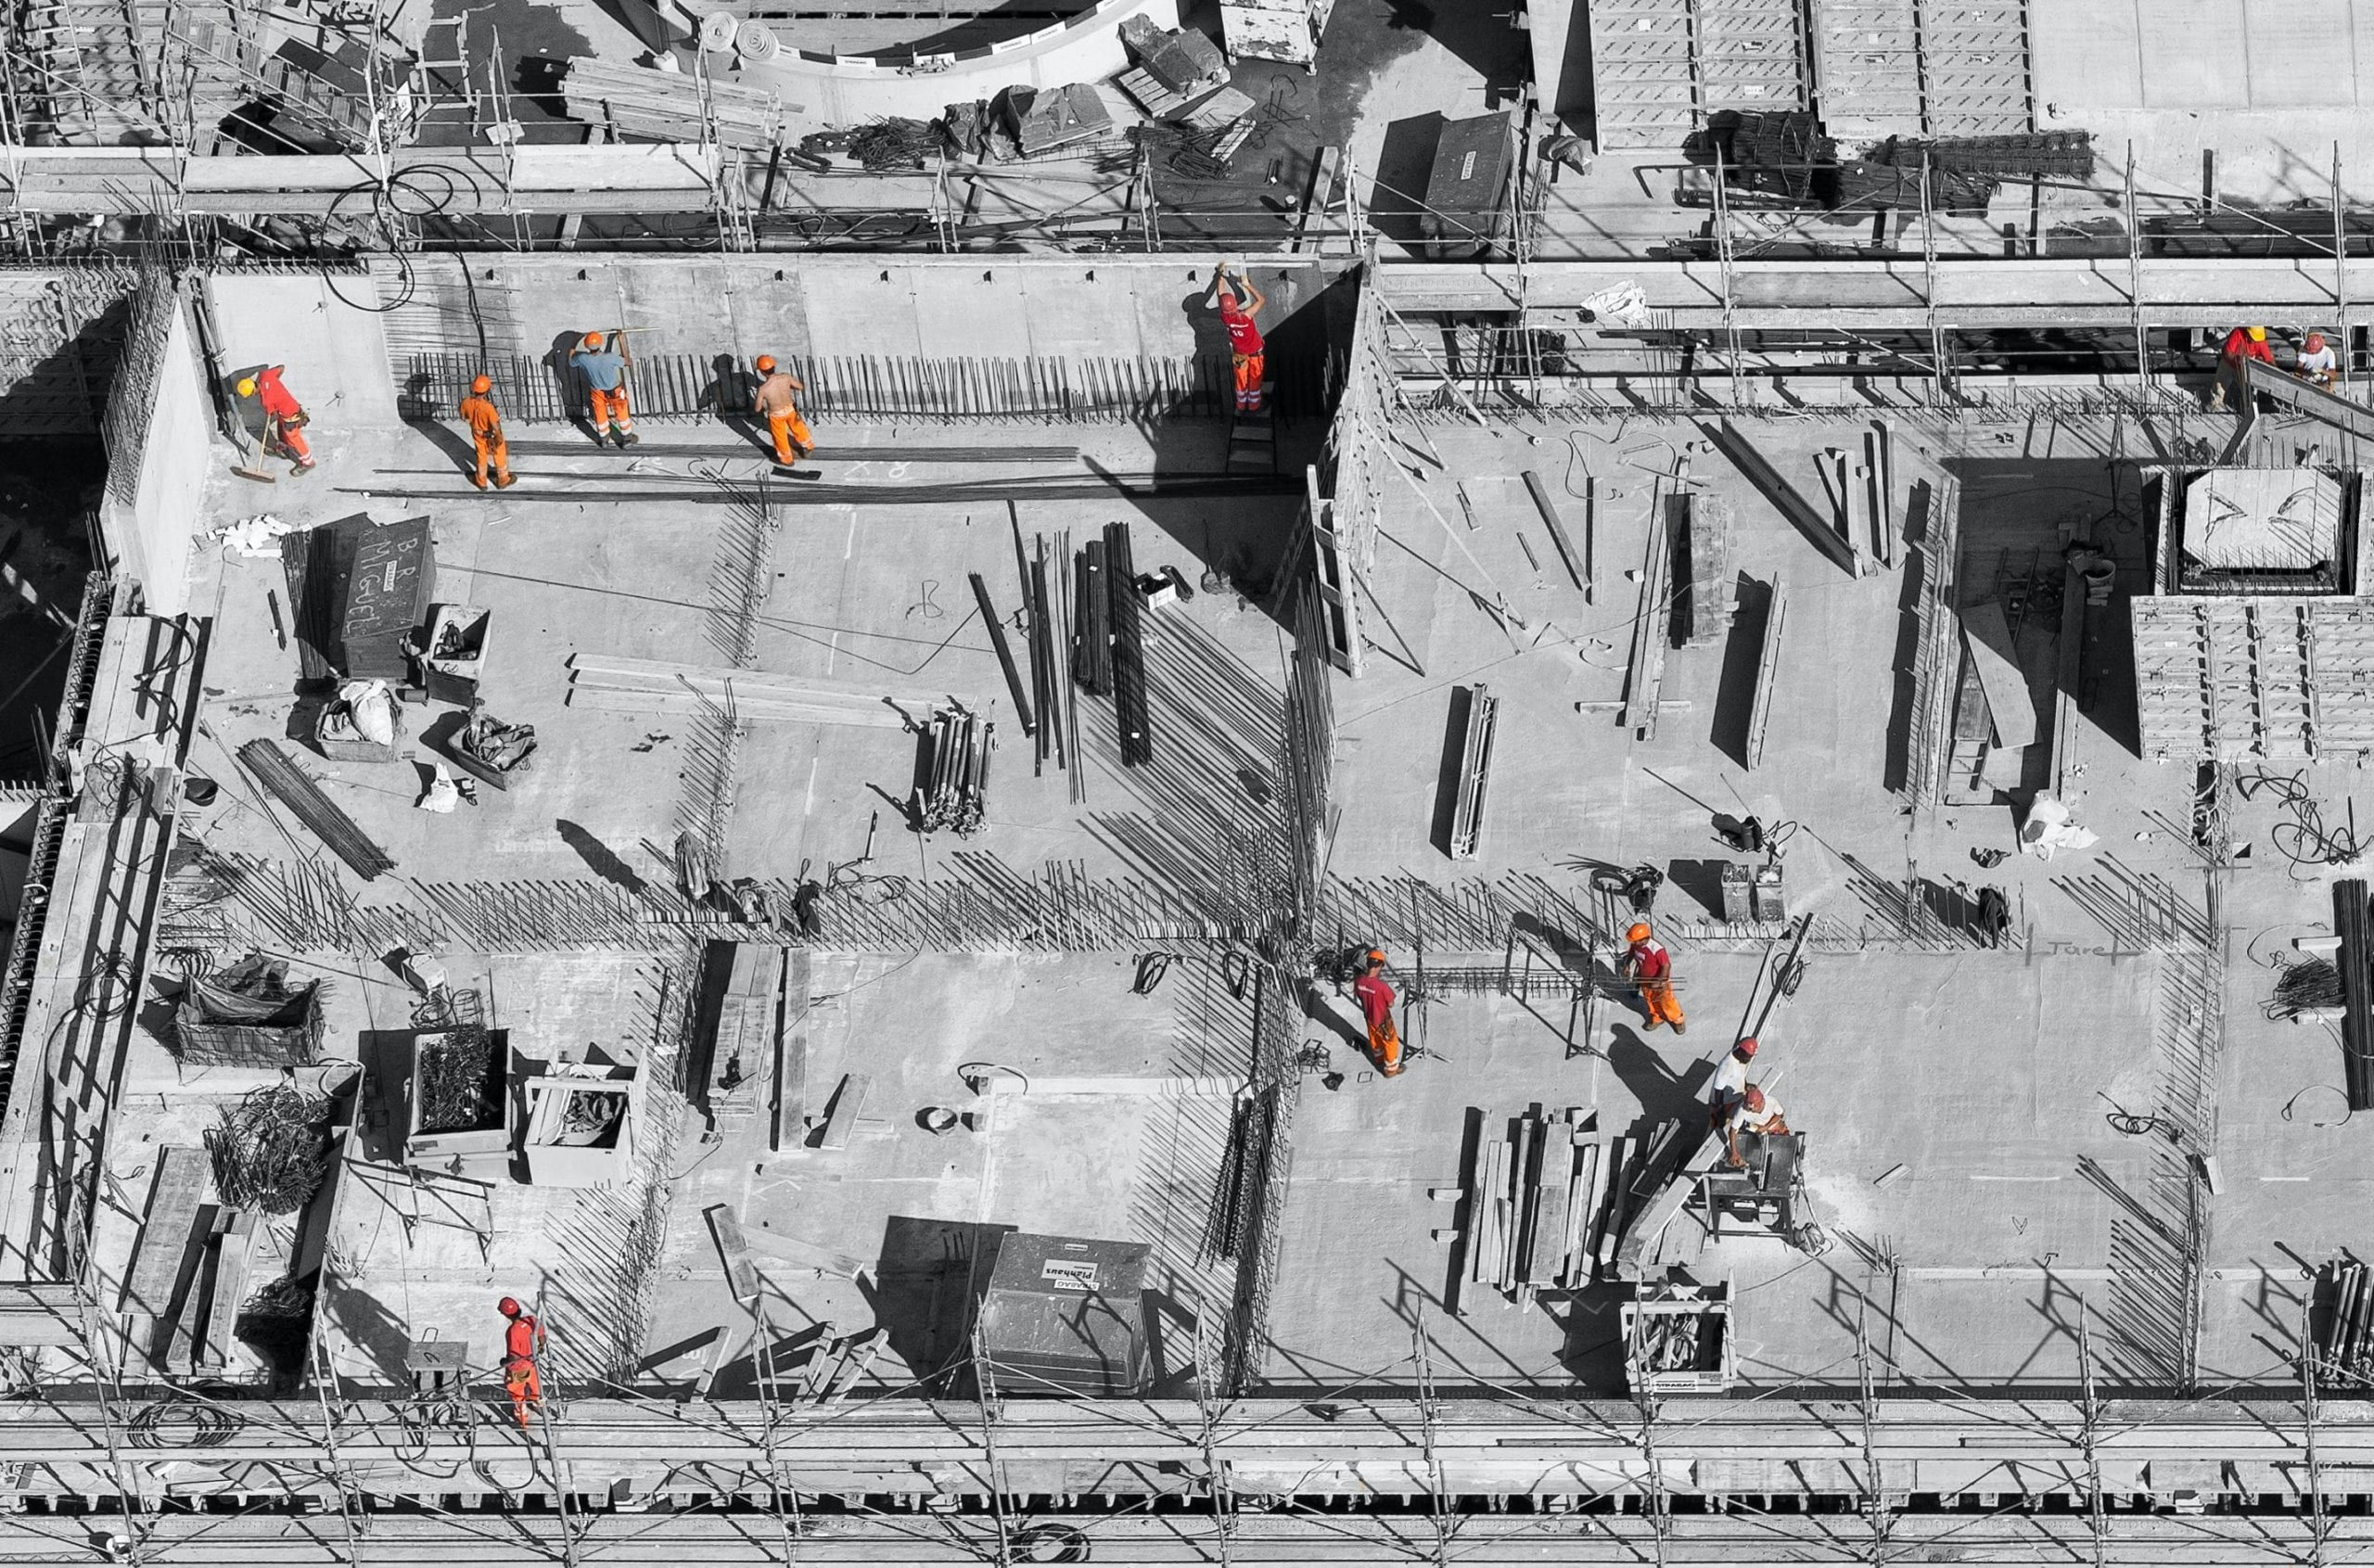 PJ Personnel Recruitment Agency stock image of a construction site from the air.